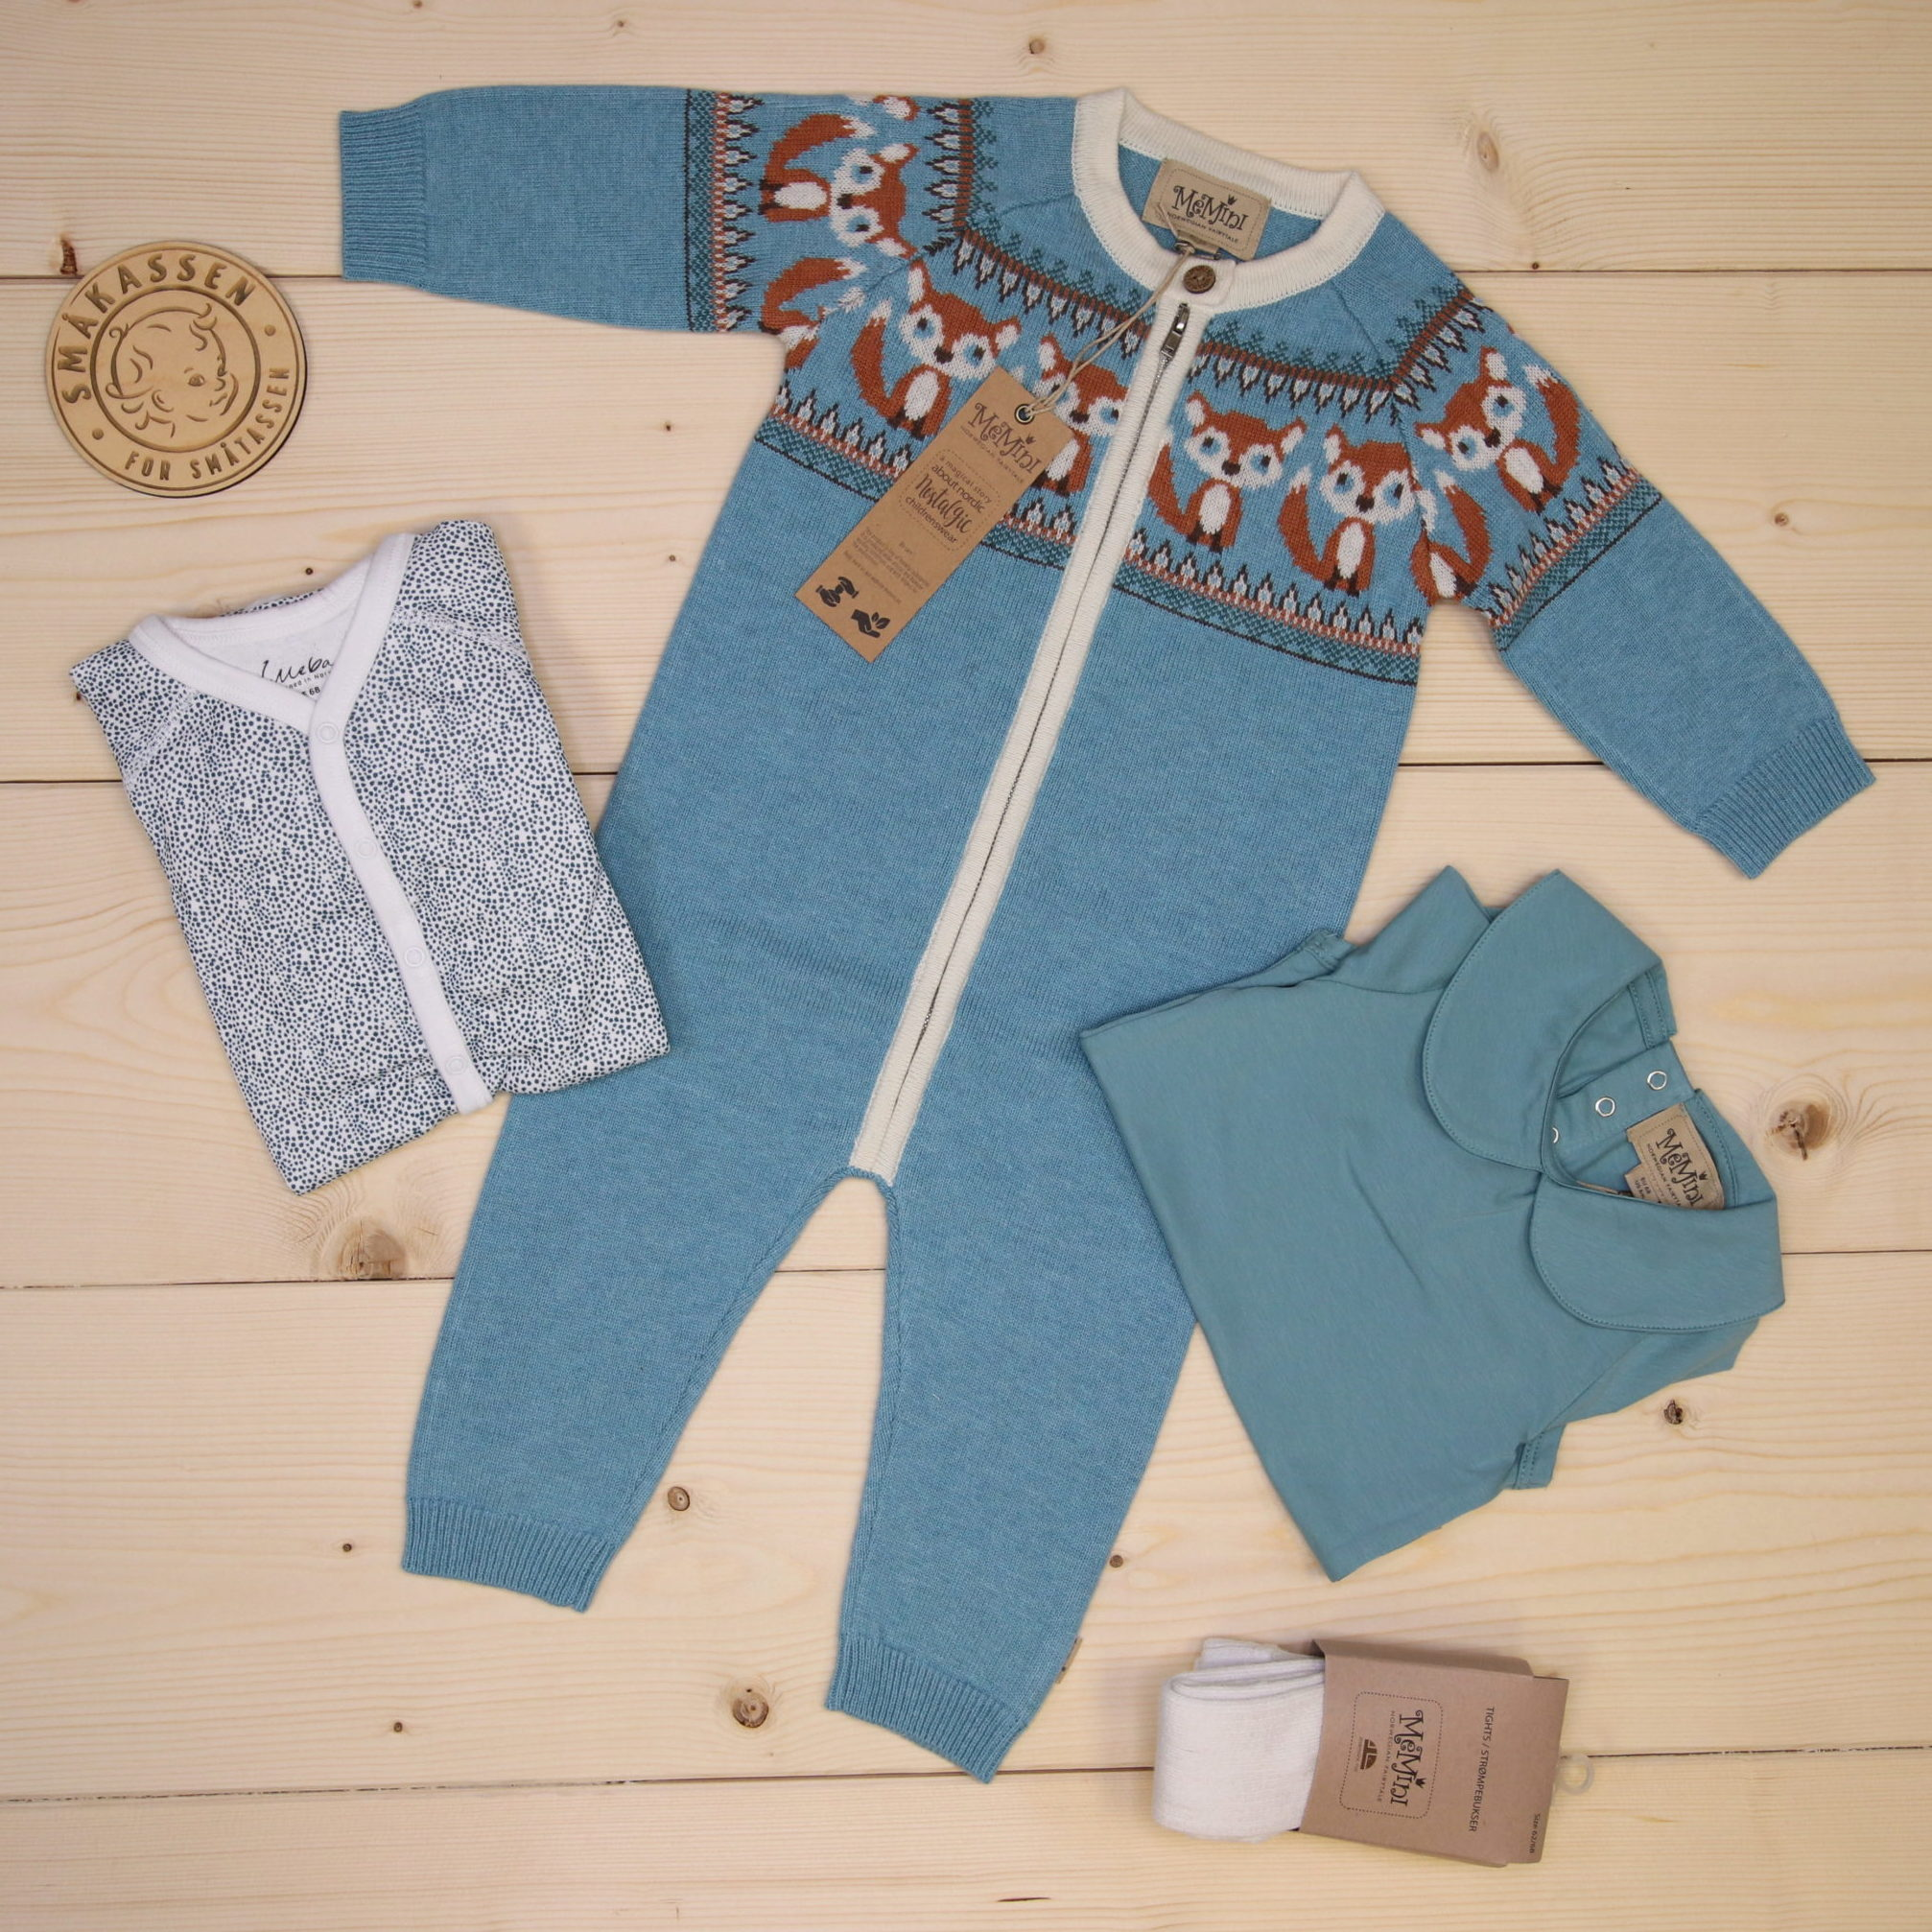 This is a 125 GBP* Småkassen that we prepared for a boy  in the styles cute, cool, and colorful in size 68